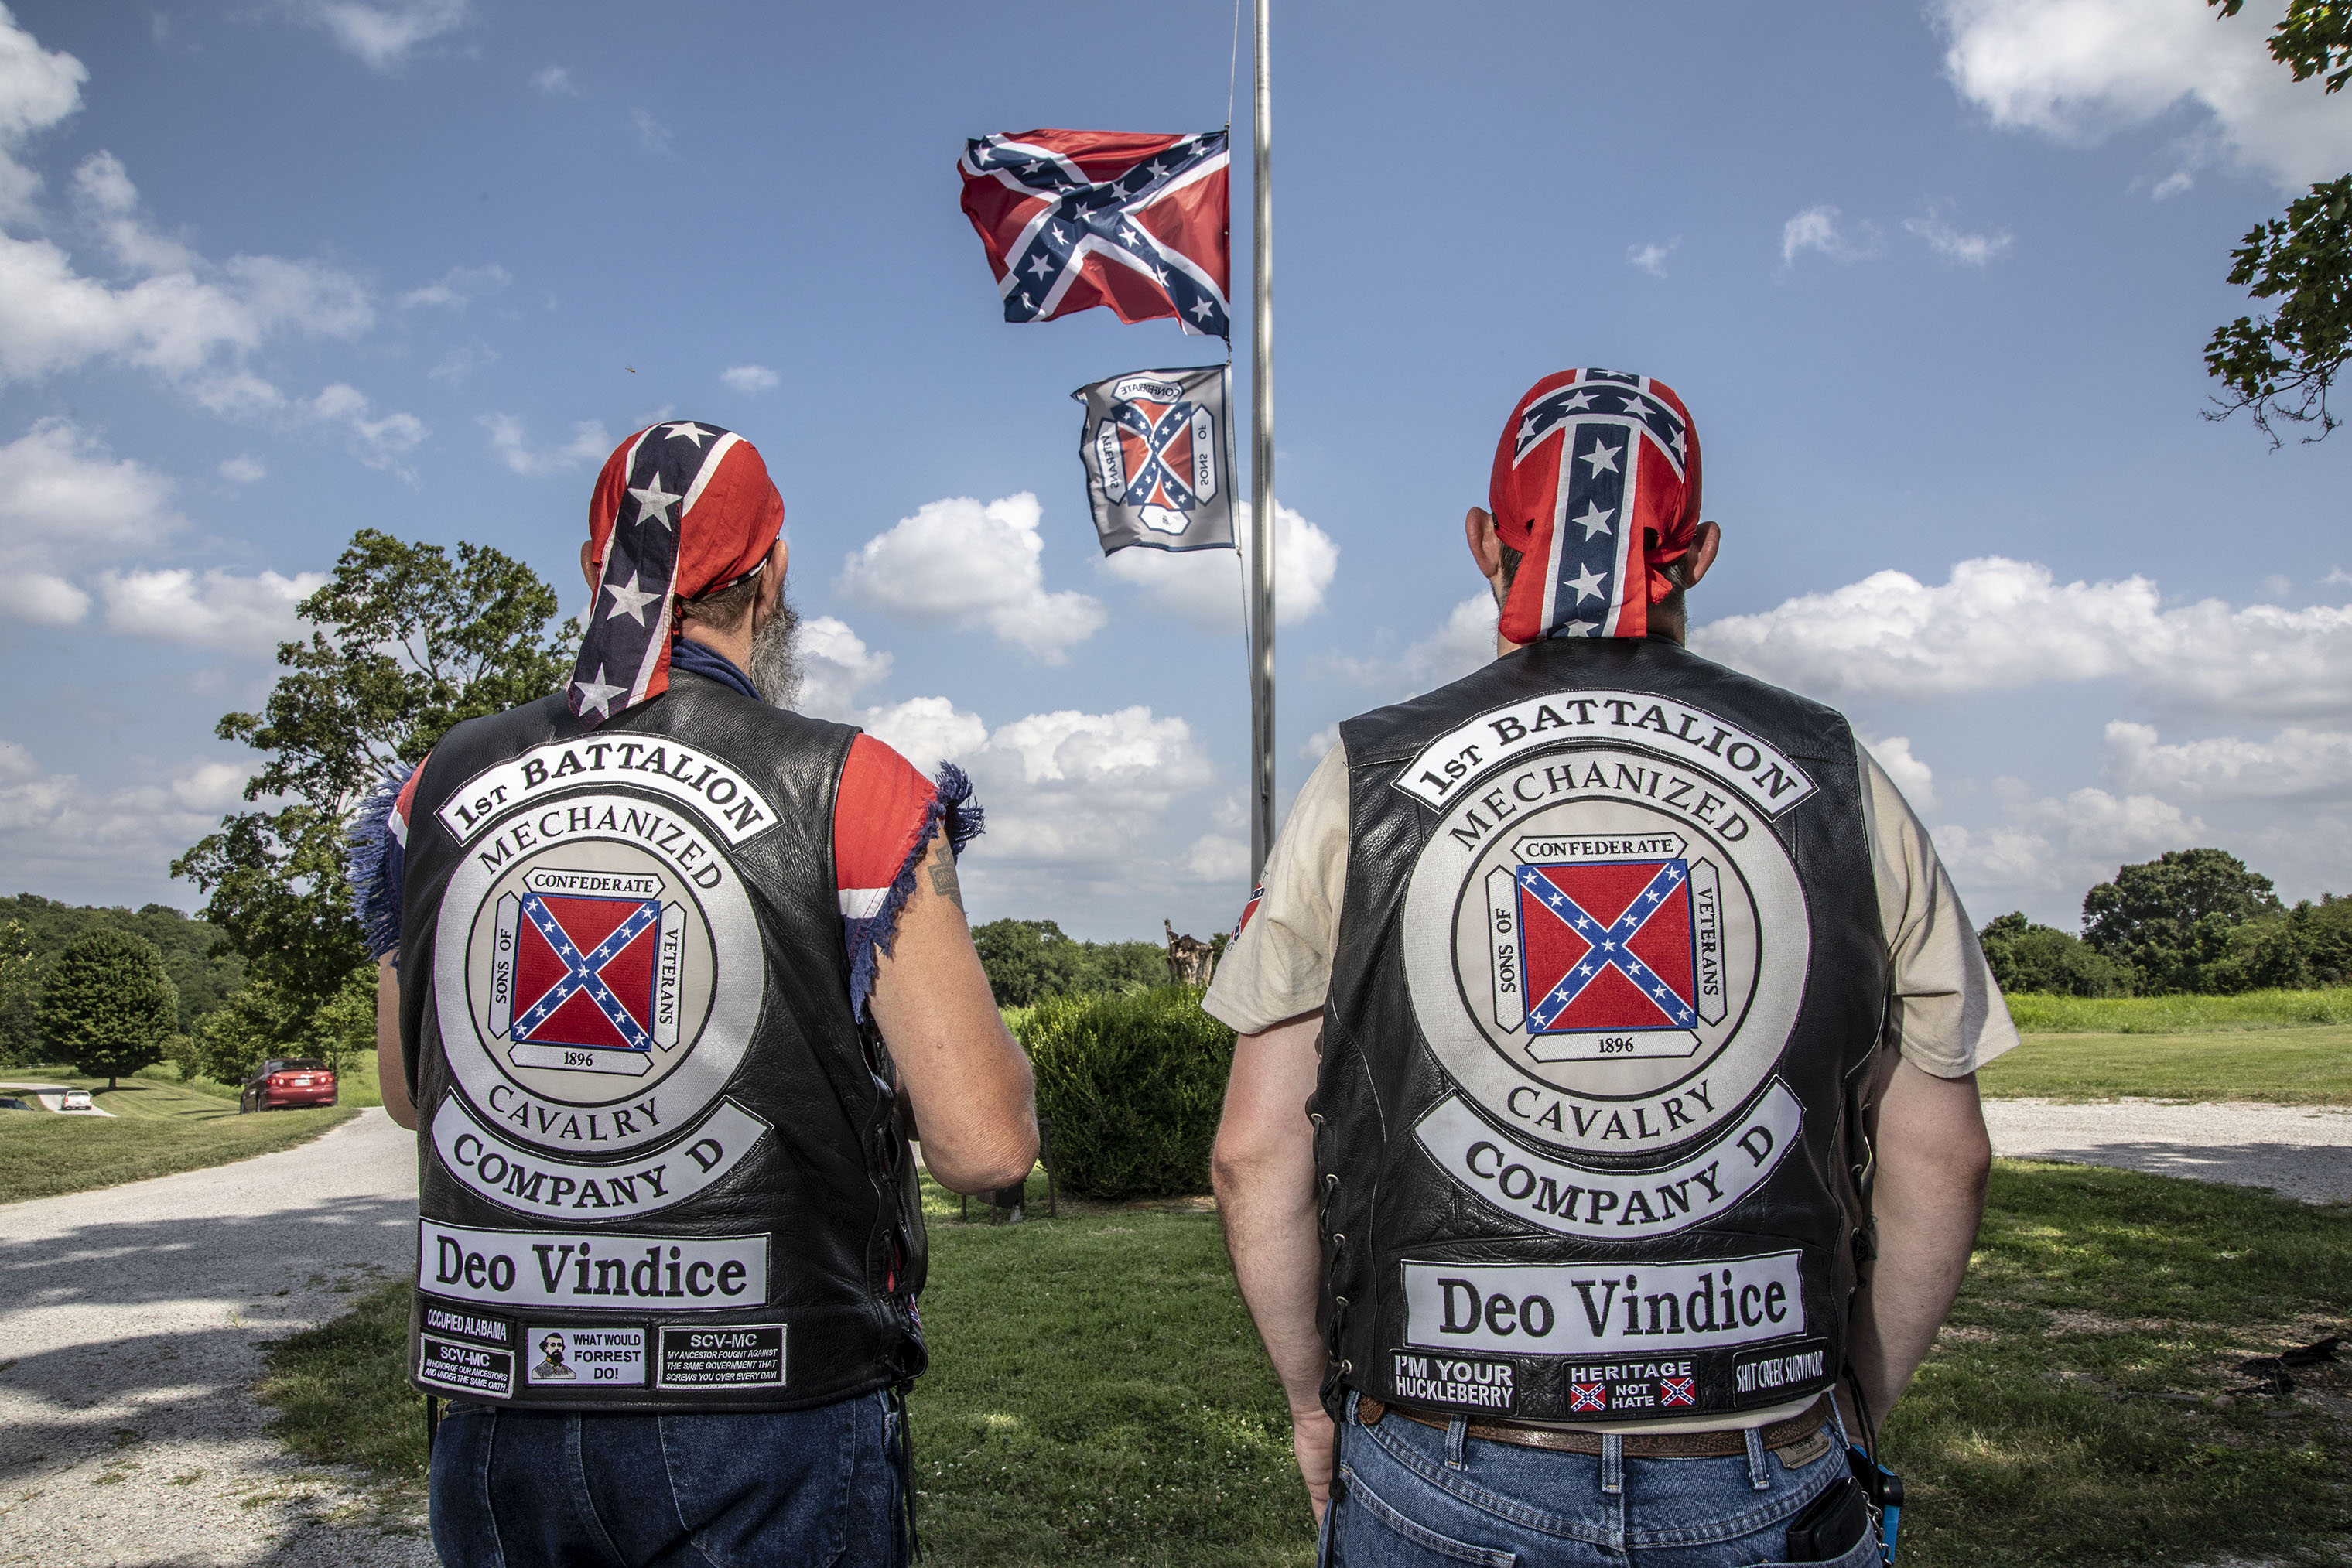 Attendees at the dedication of the National Confederate Museum in Elm Springs, Tenn., on July 20, 2018.